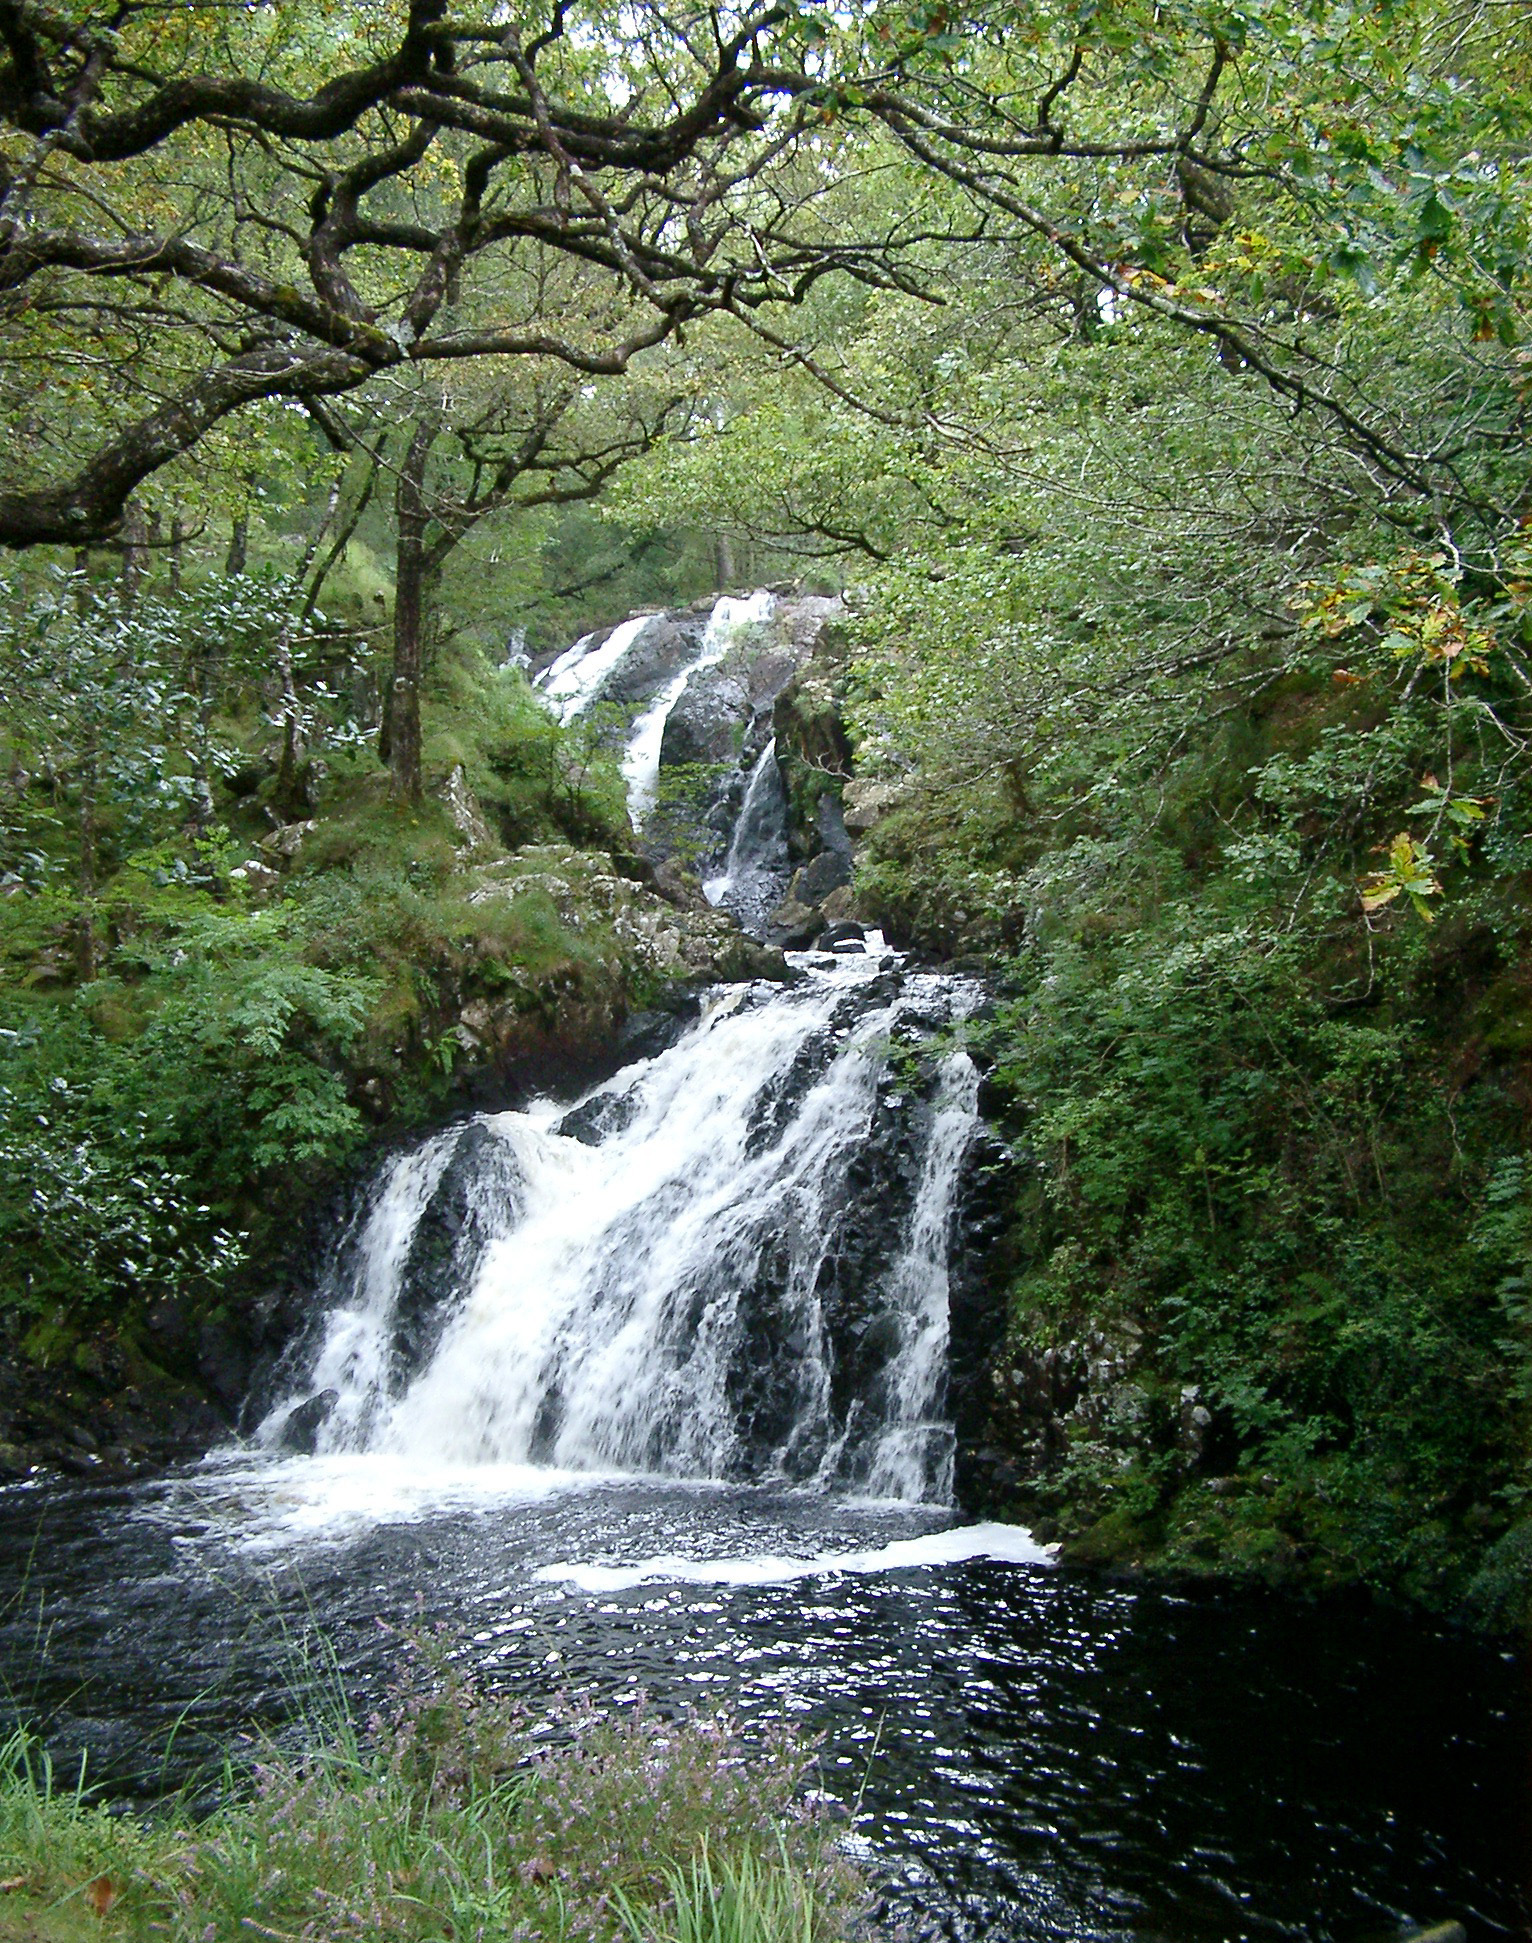 Rhaeadr Ddu falls, or the Black Falls, take their name from the black rock over which the water cascades and are found in the Coed Ganllwyd National Nature Reserve, Wales